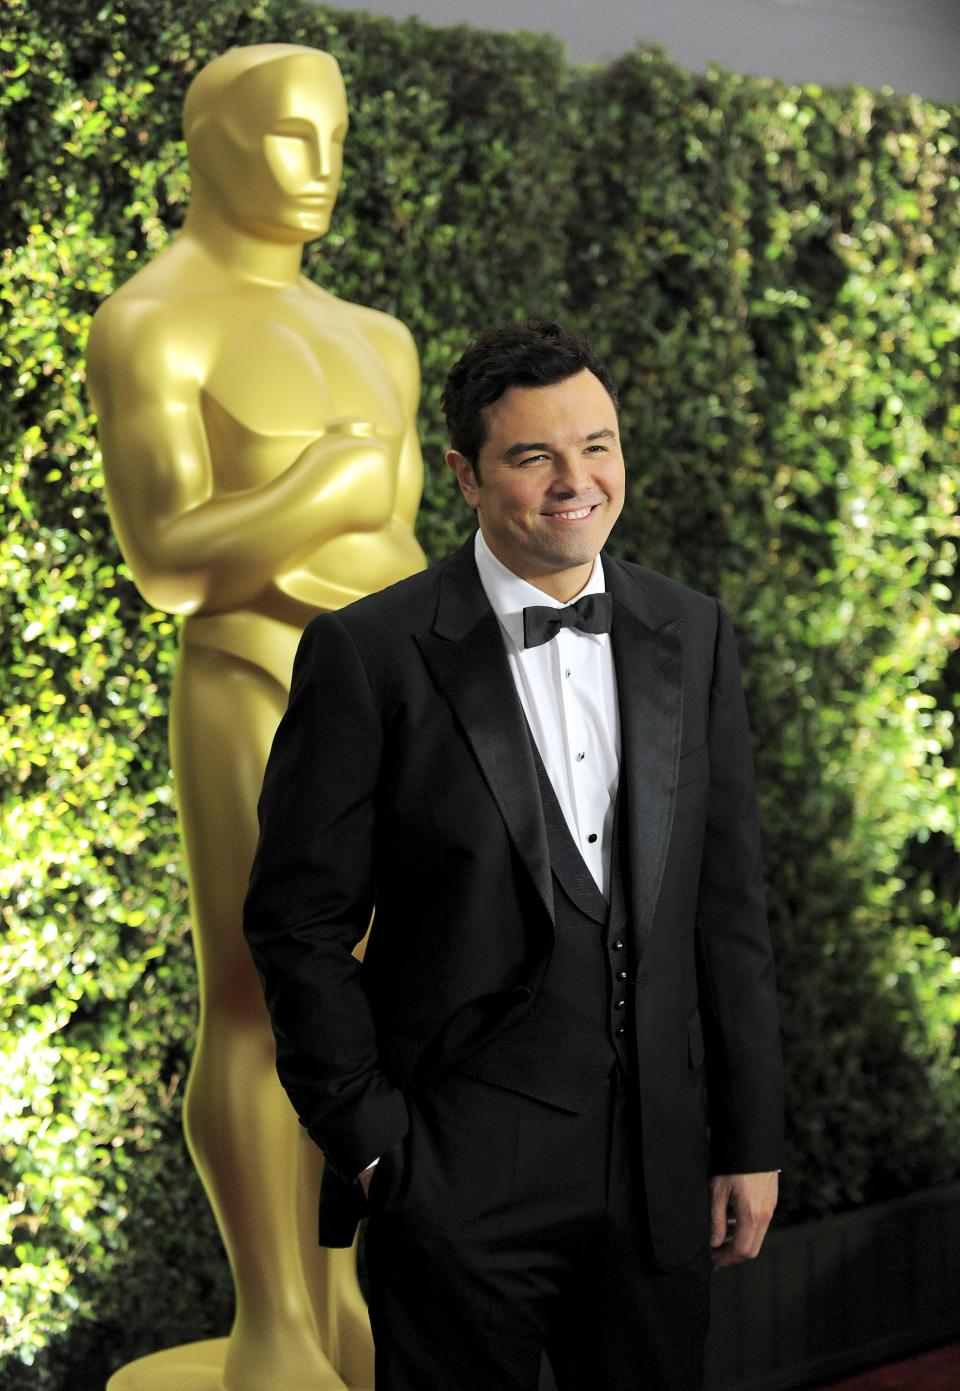 Seth MacFarlane arrives at the 4th Annual Governors Awards at Hollywood and Highland Center's Ray Dolby Ballroom on Saturday, Dec. 1, 2012, in Los Angeles. (Photo by Jordan Strauss/Invision/AP)